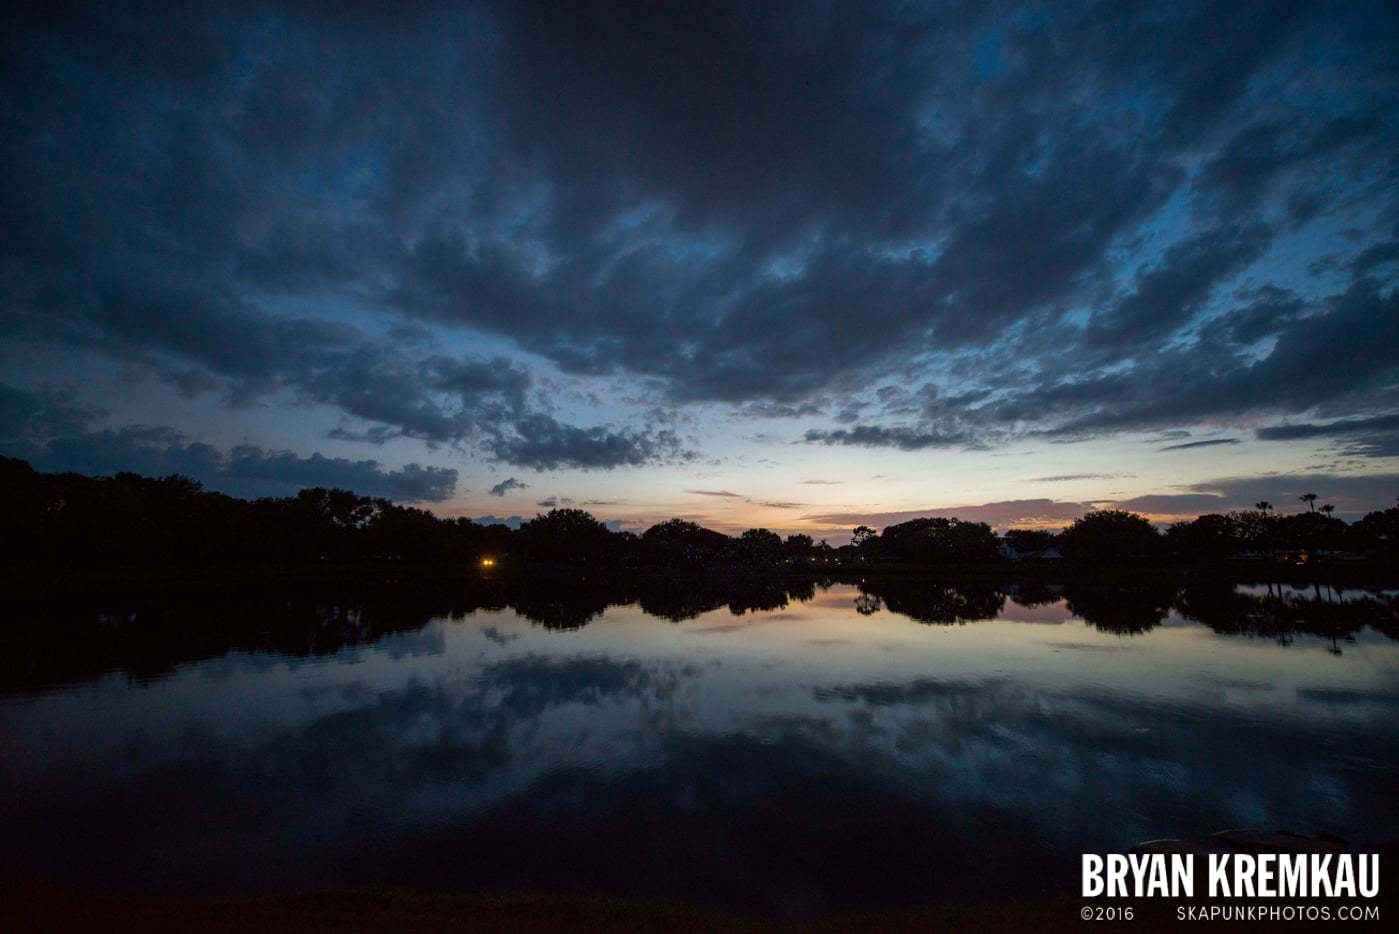 Sunsets, Astrophotography & Birds @ Venice, Florida - 10.25.14 - 11.5.14 (1)